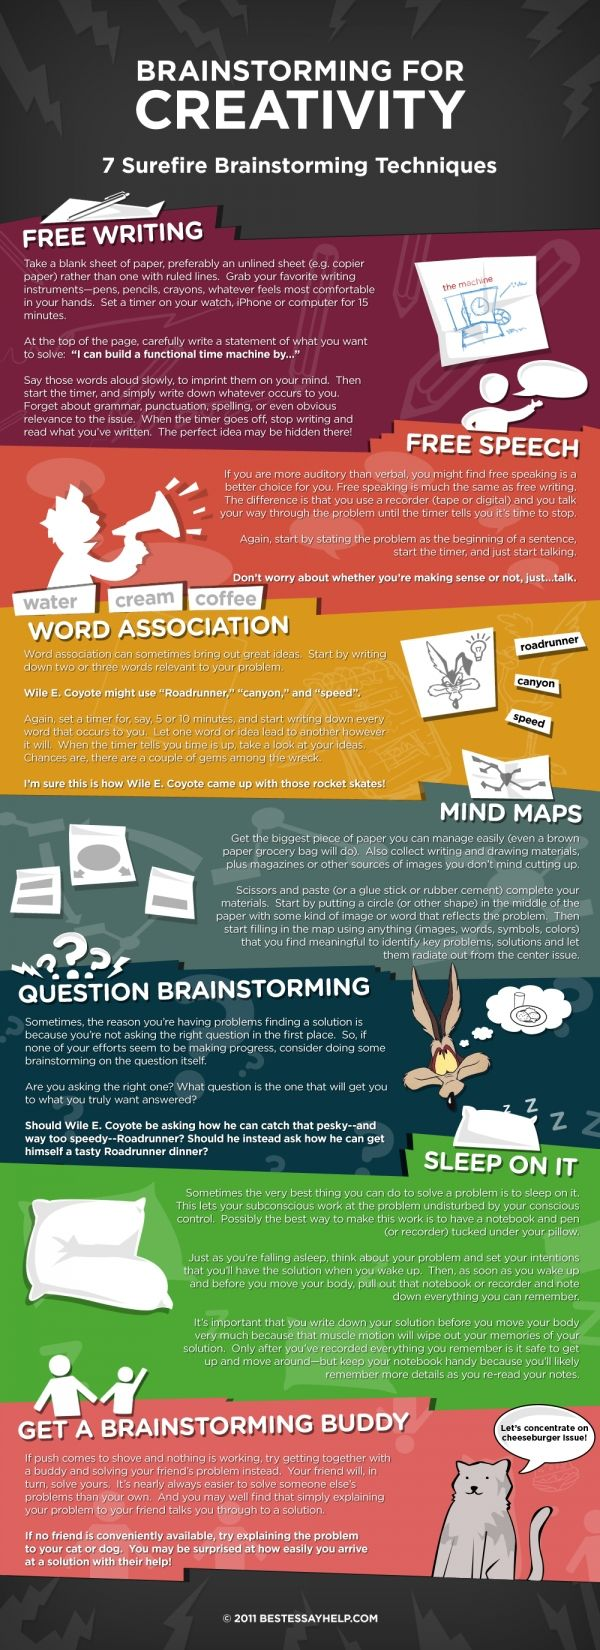 How To Brainstorm For Creativity